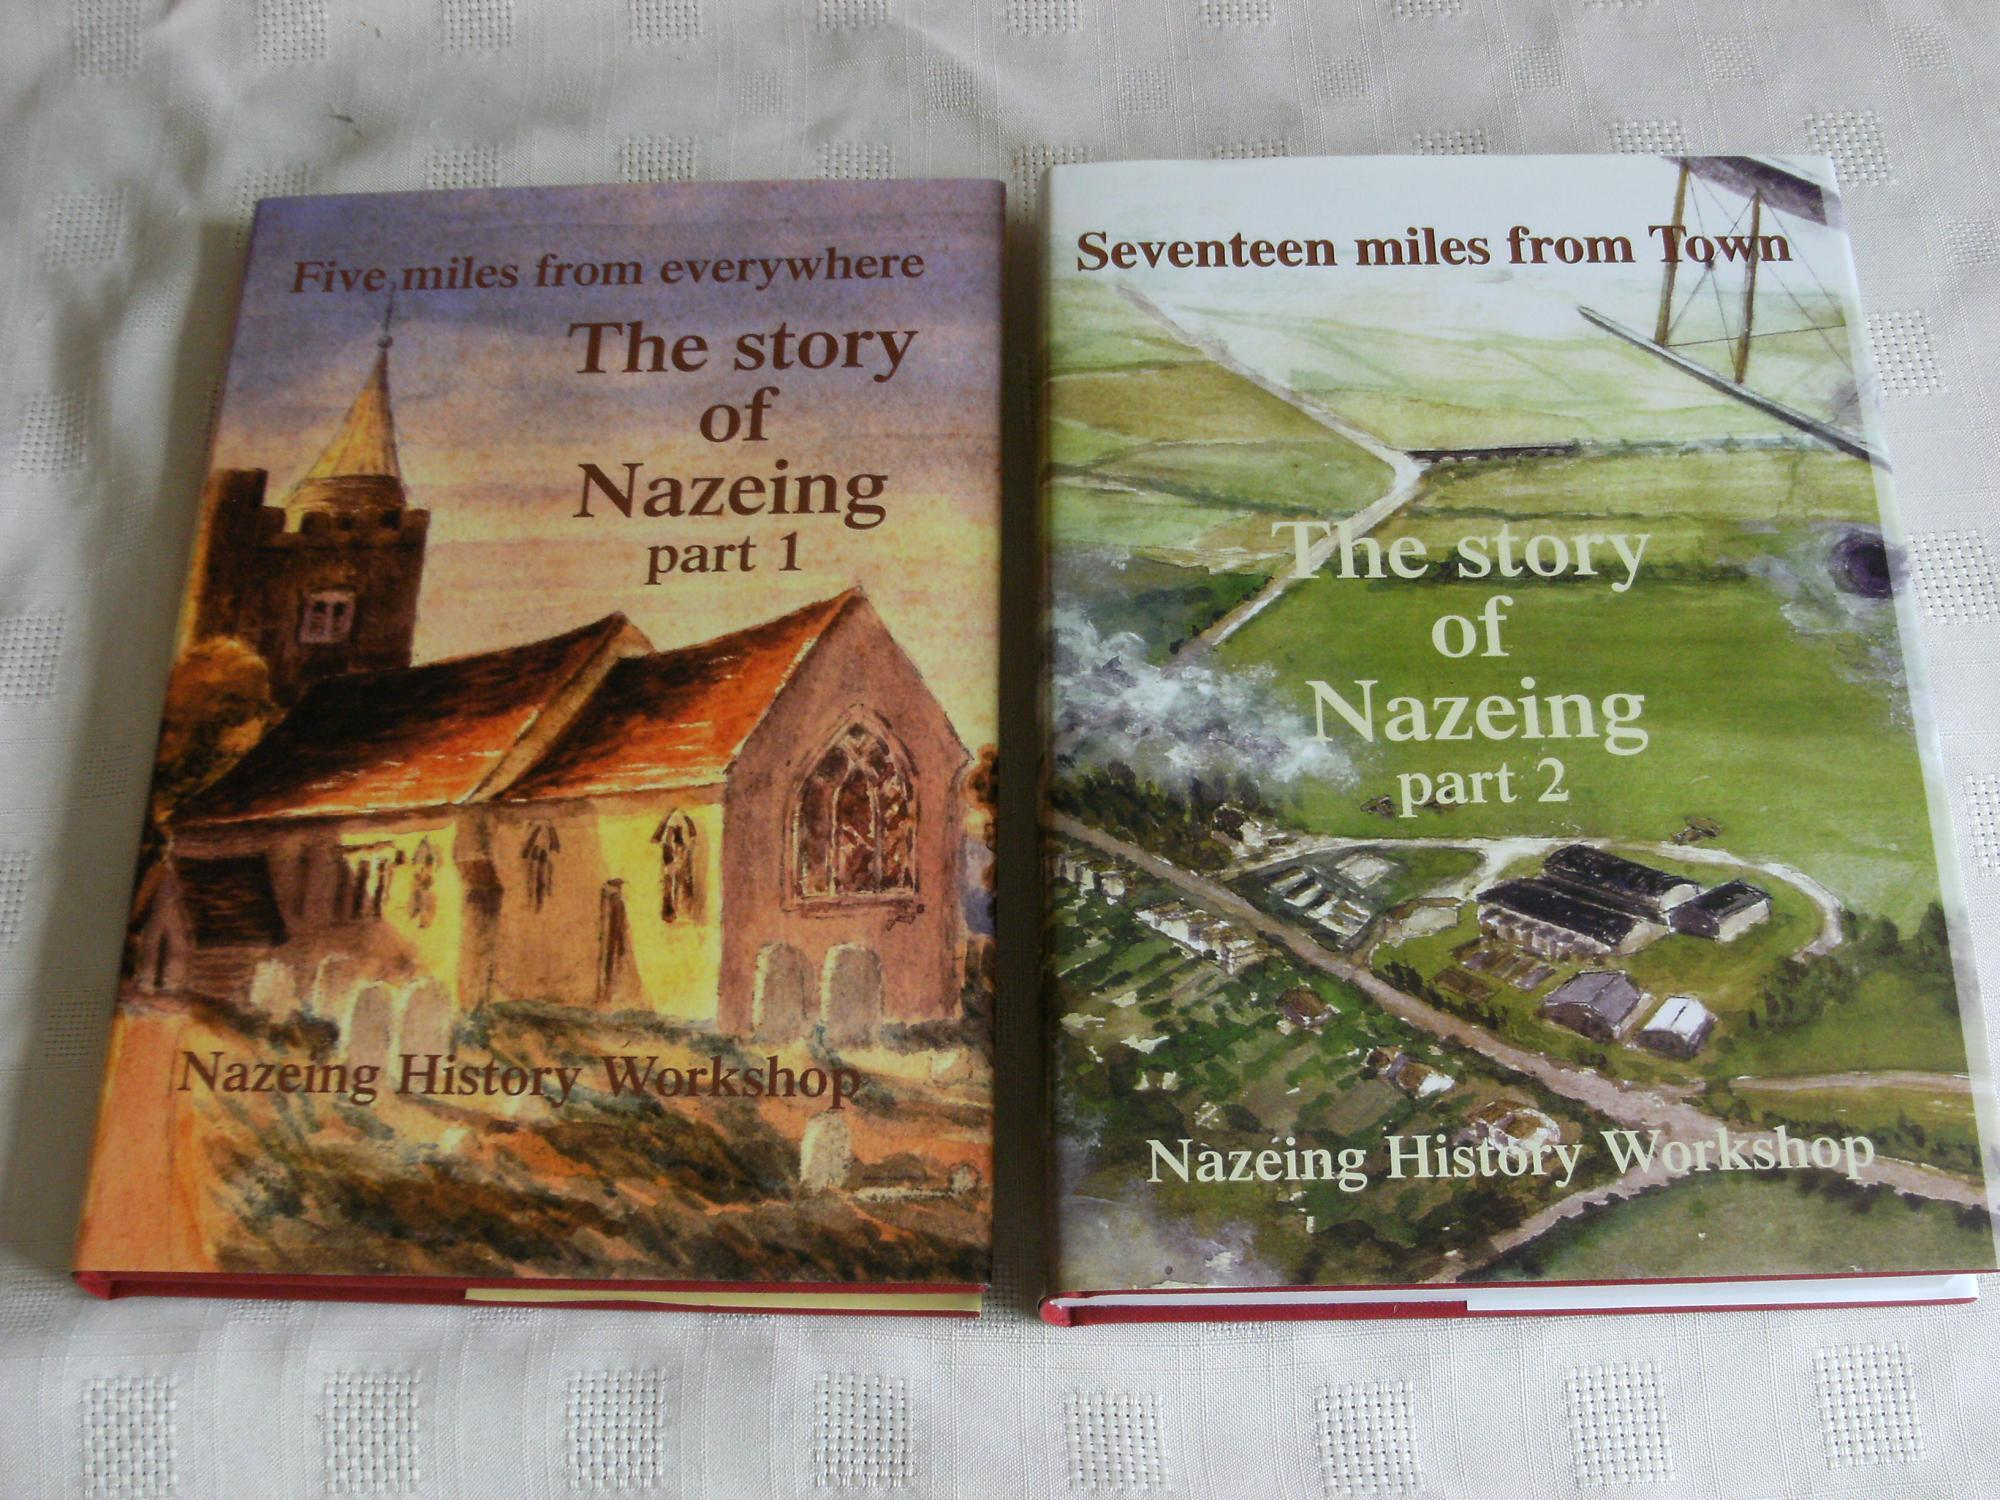 The Story of Nazeing